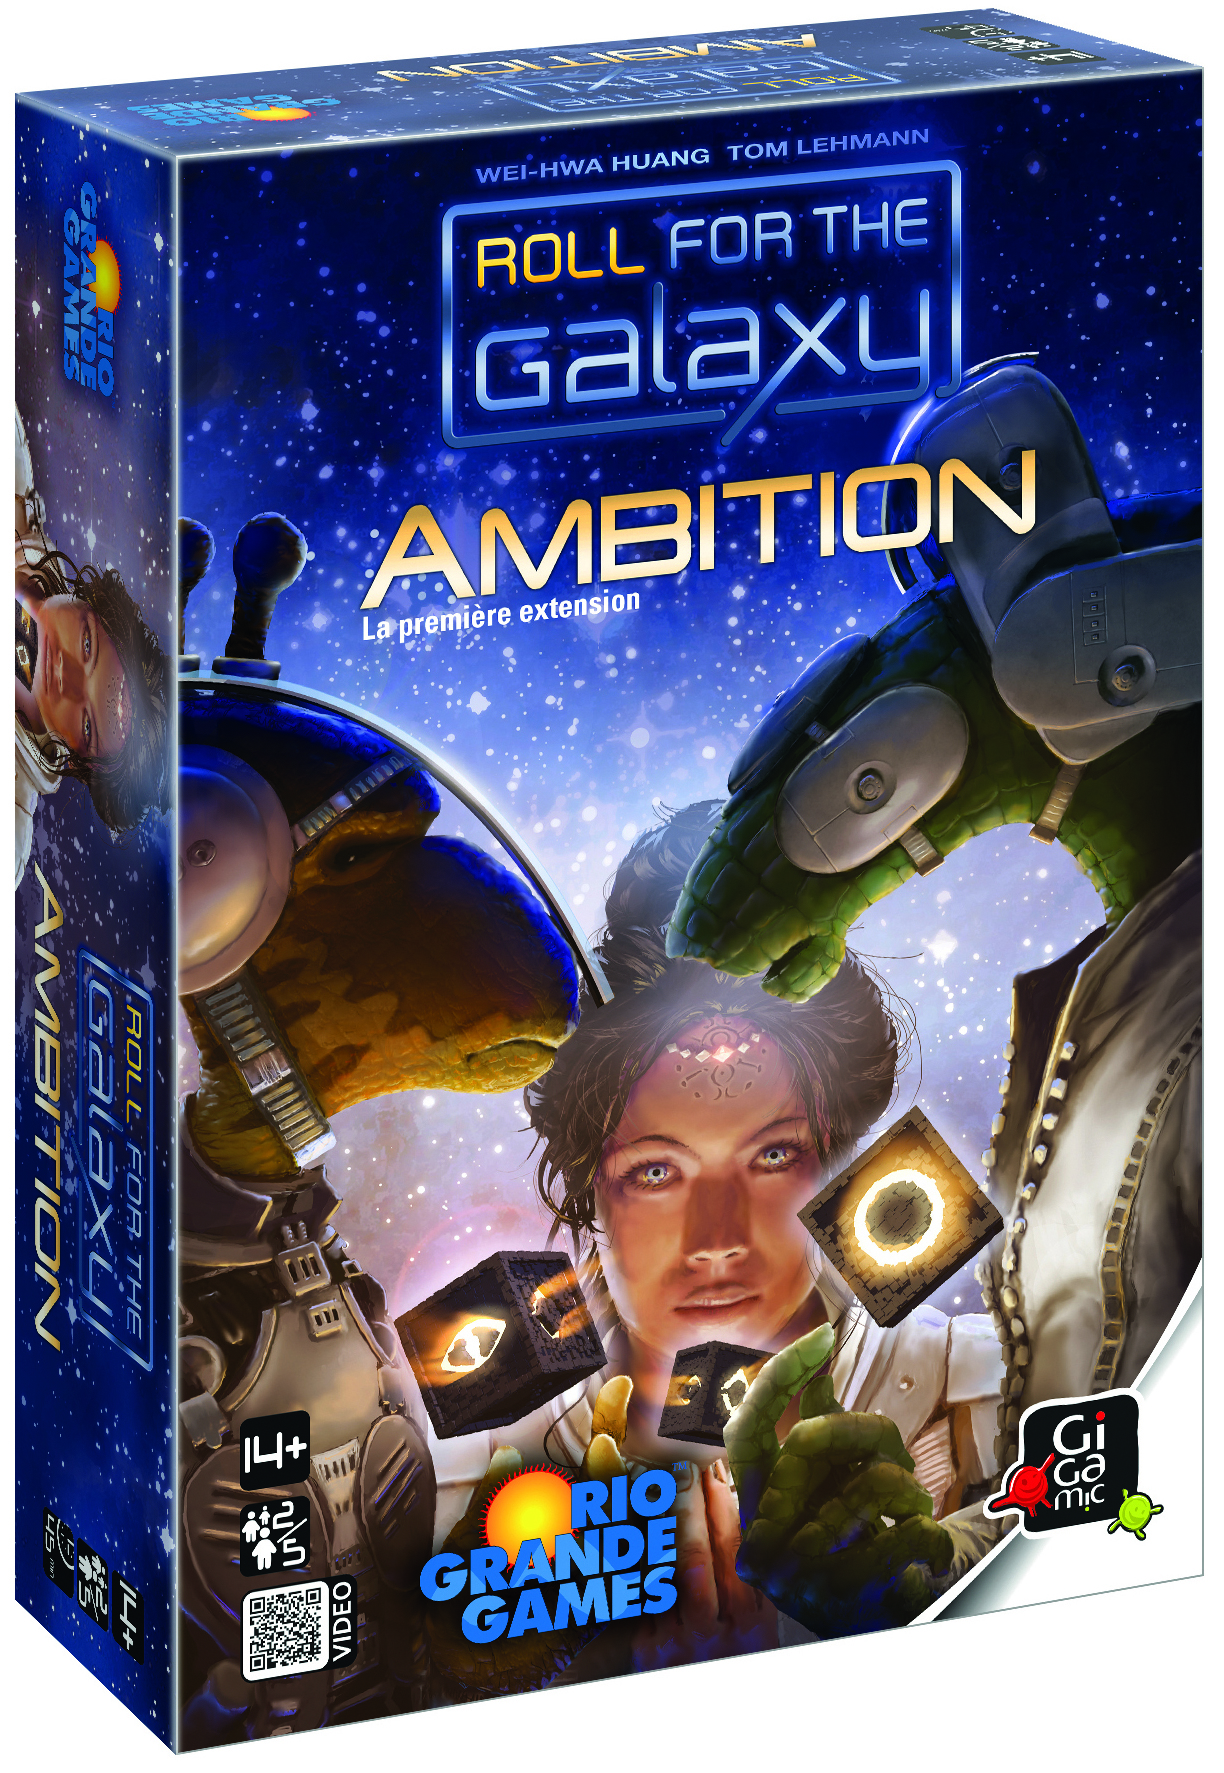 roll-for-the-galaxy-ambition-gigamic-couv-jeu-de-societe-ludovox